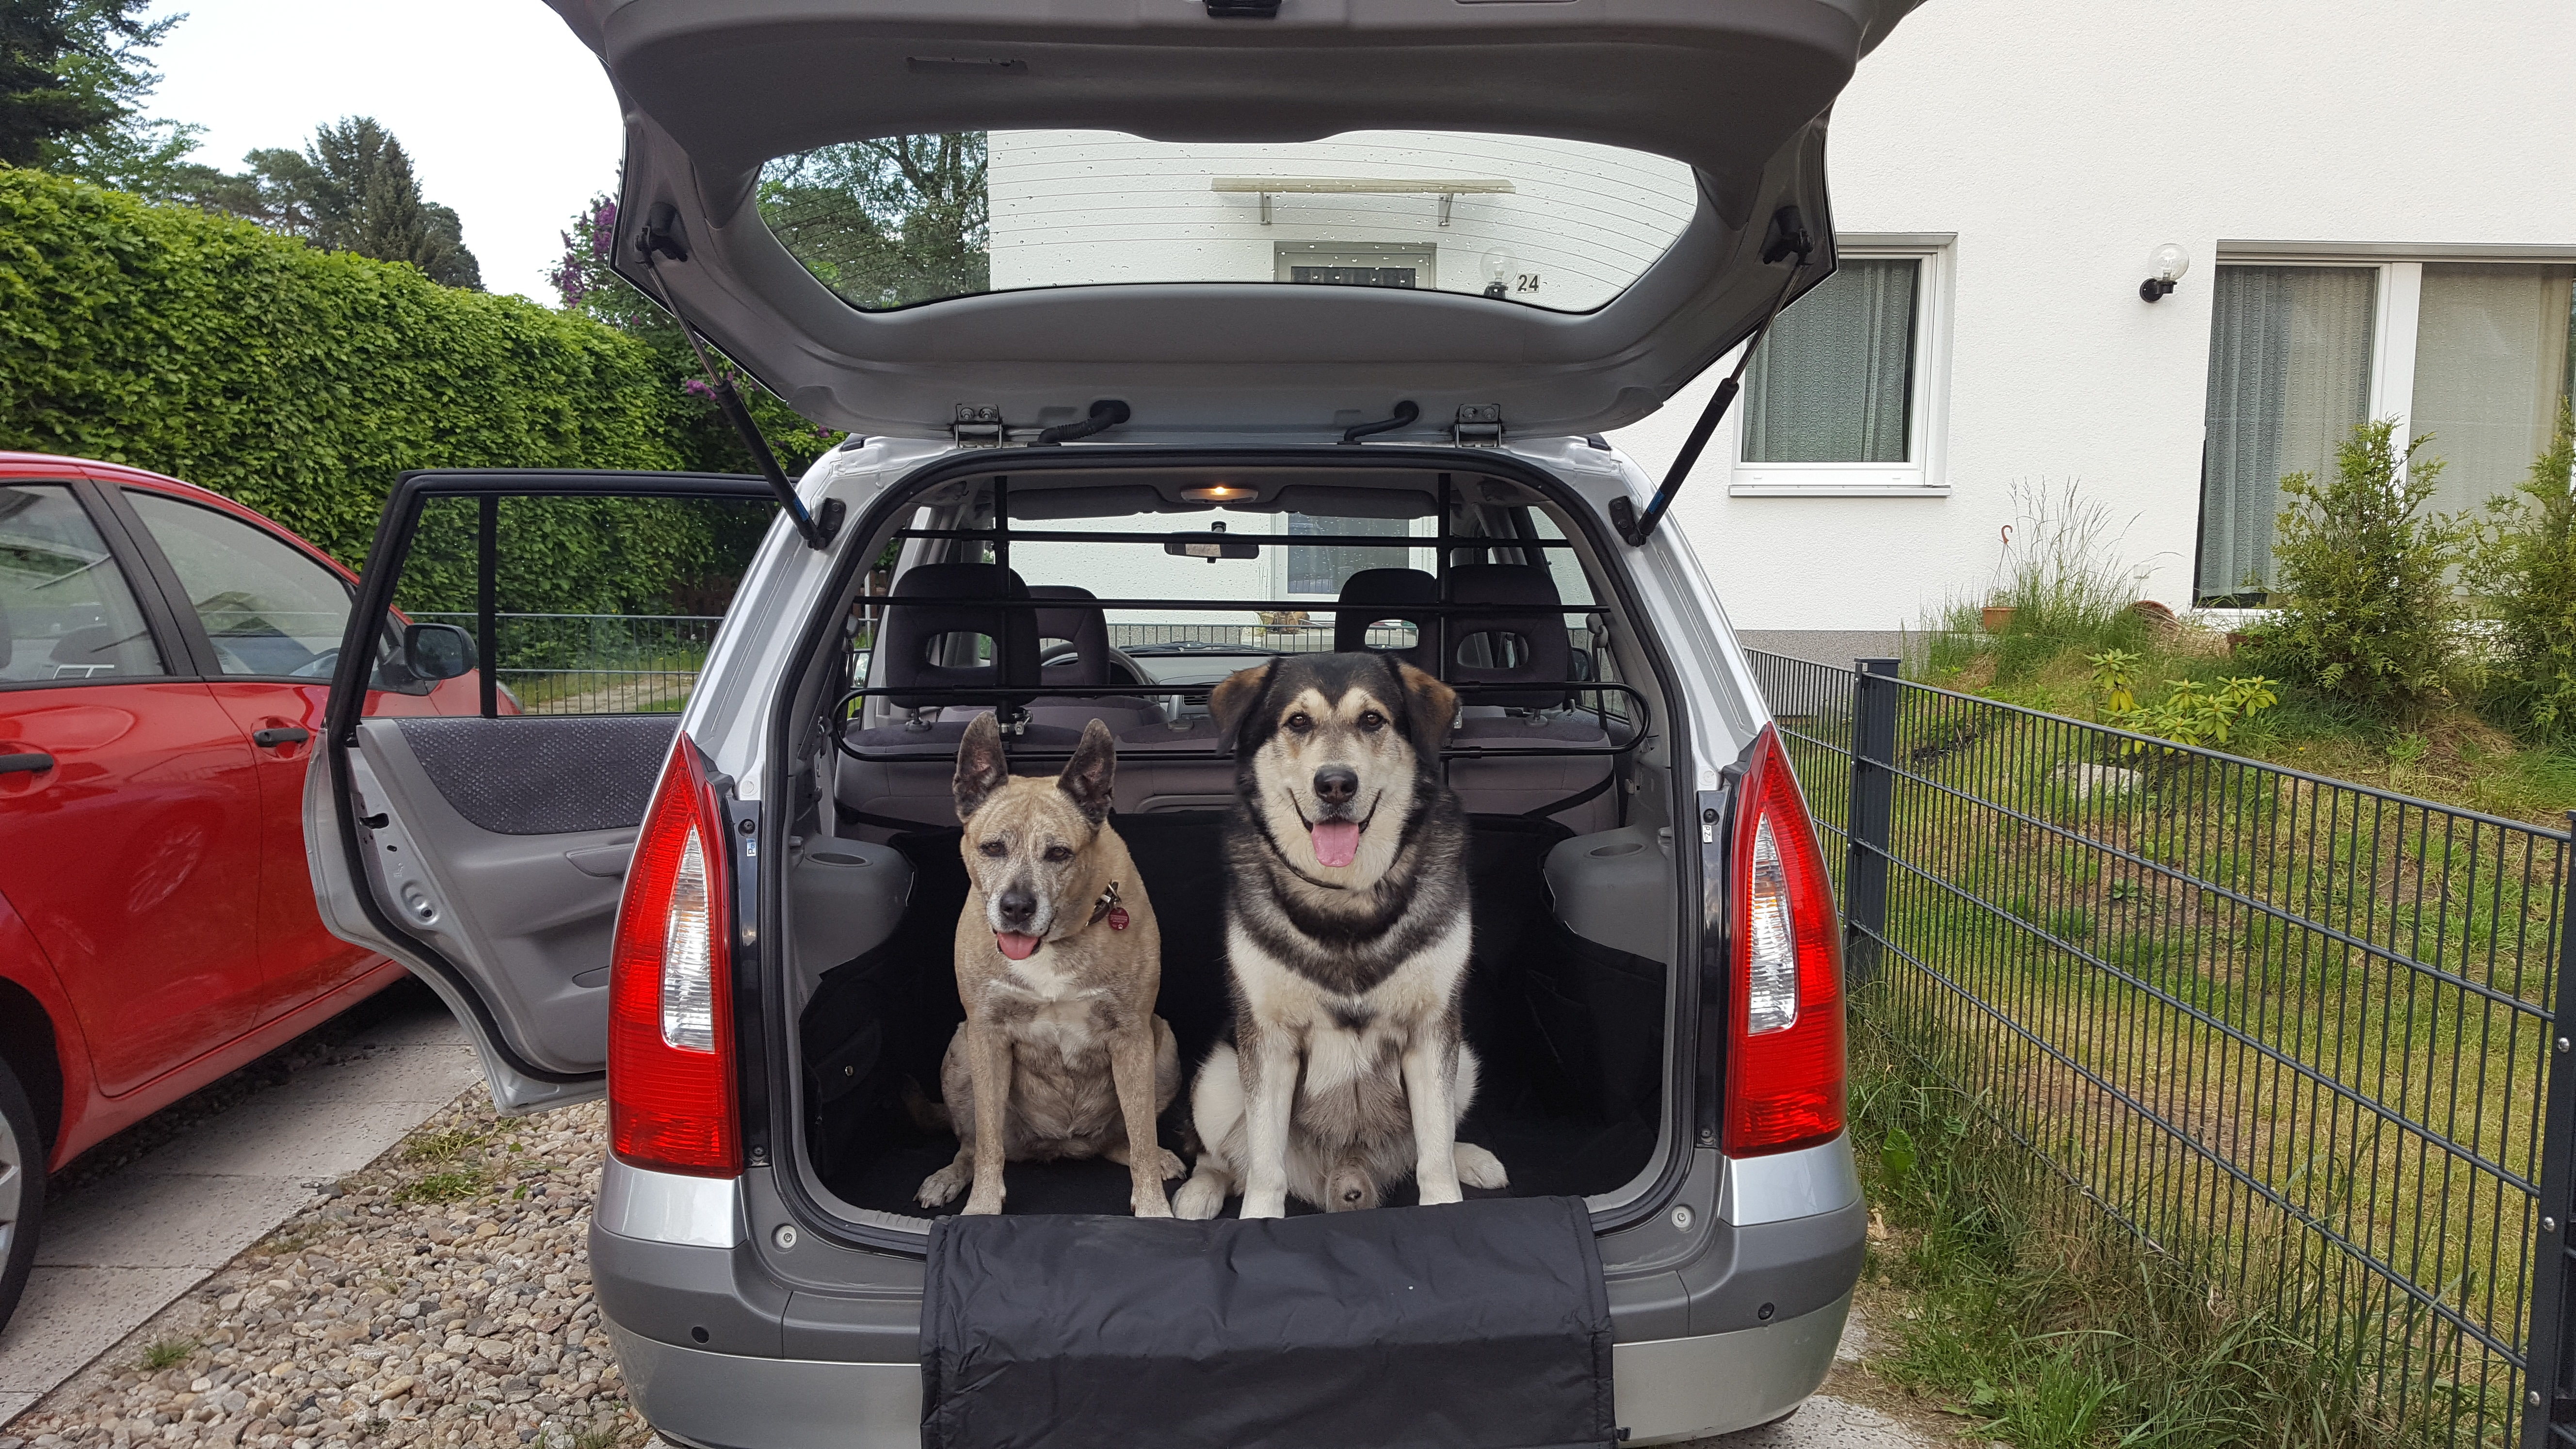 tipps f r sicherheitsgurte f r den hund im auto hund und. Black Bedroom Furniture Sets. Home Design Ideas